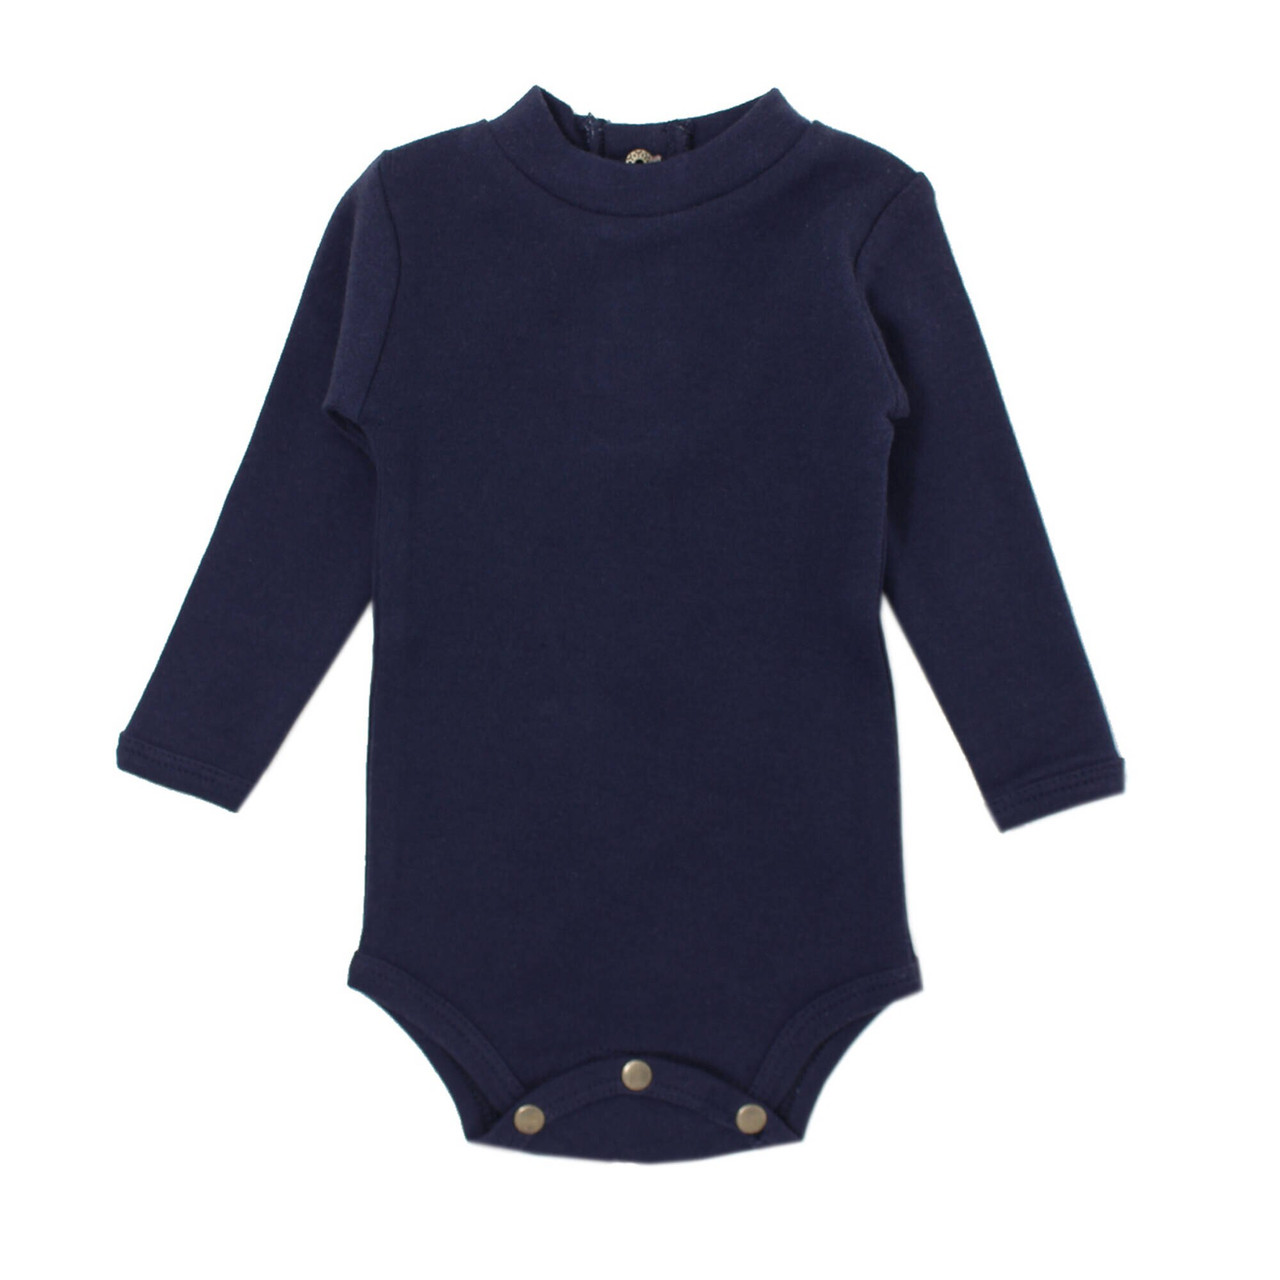 Organic Mock-Neck Bodysuit in Navy, Flat